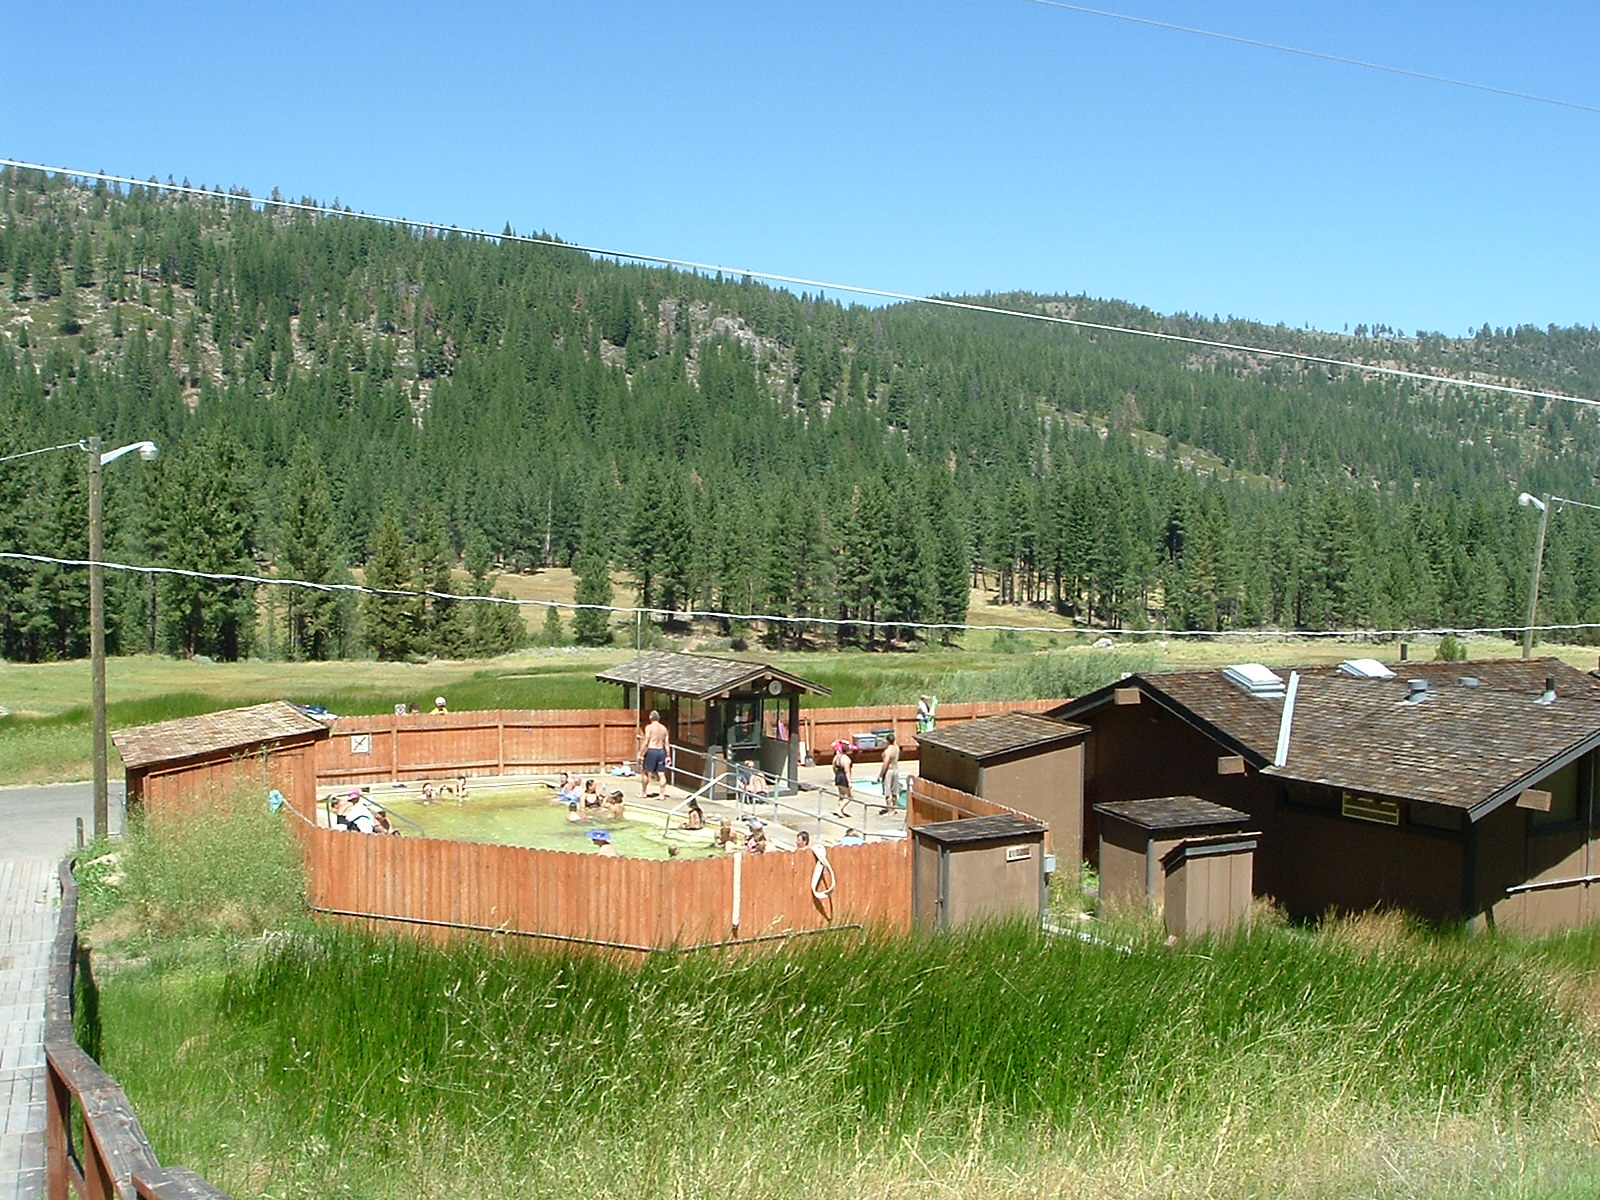 Grover Hot Springs and Markleeville